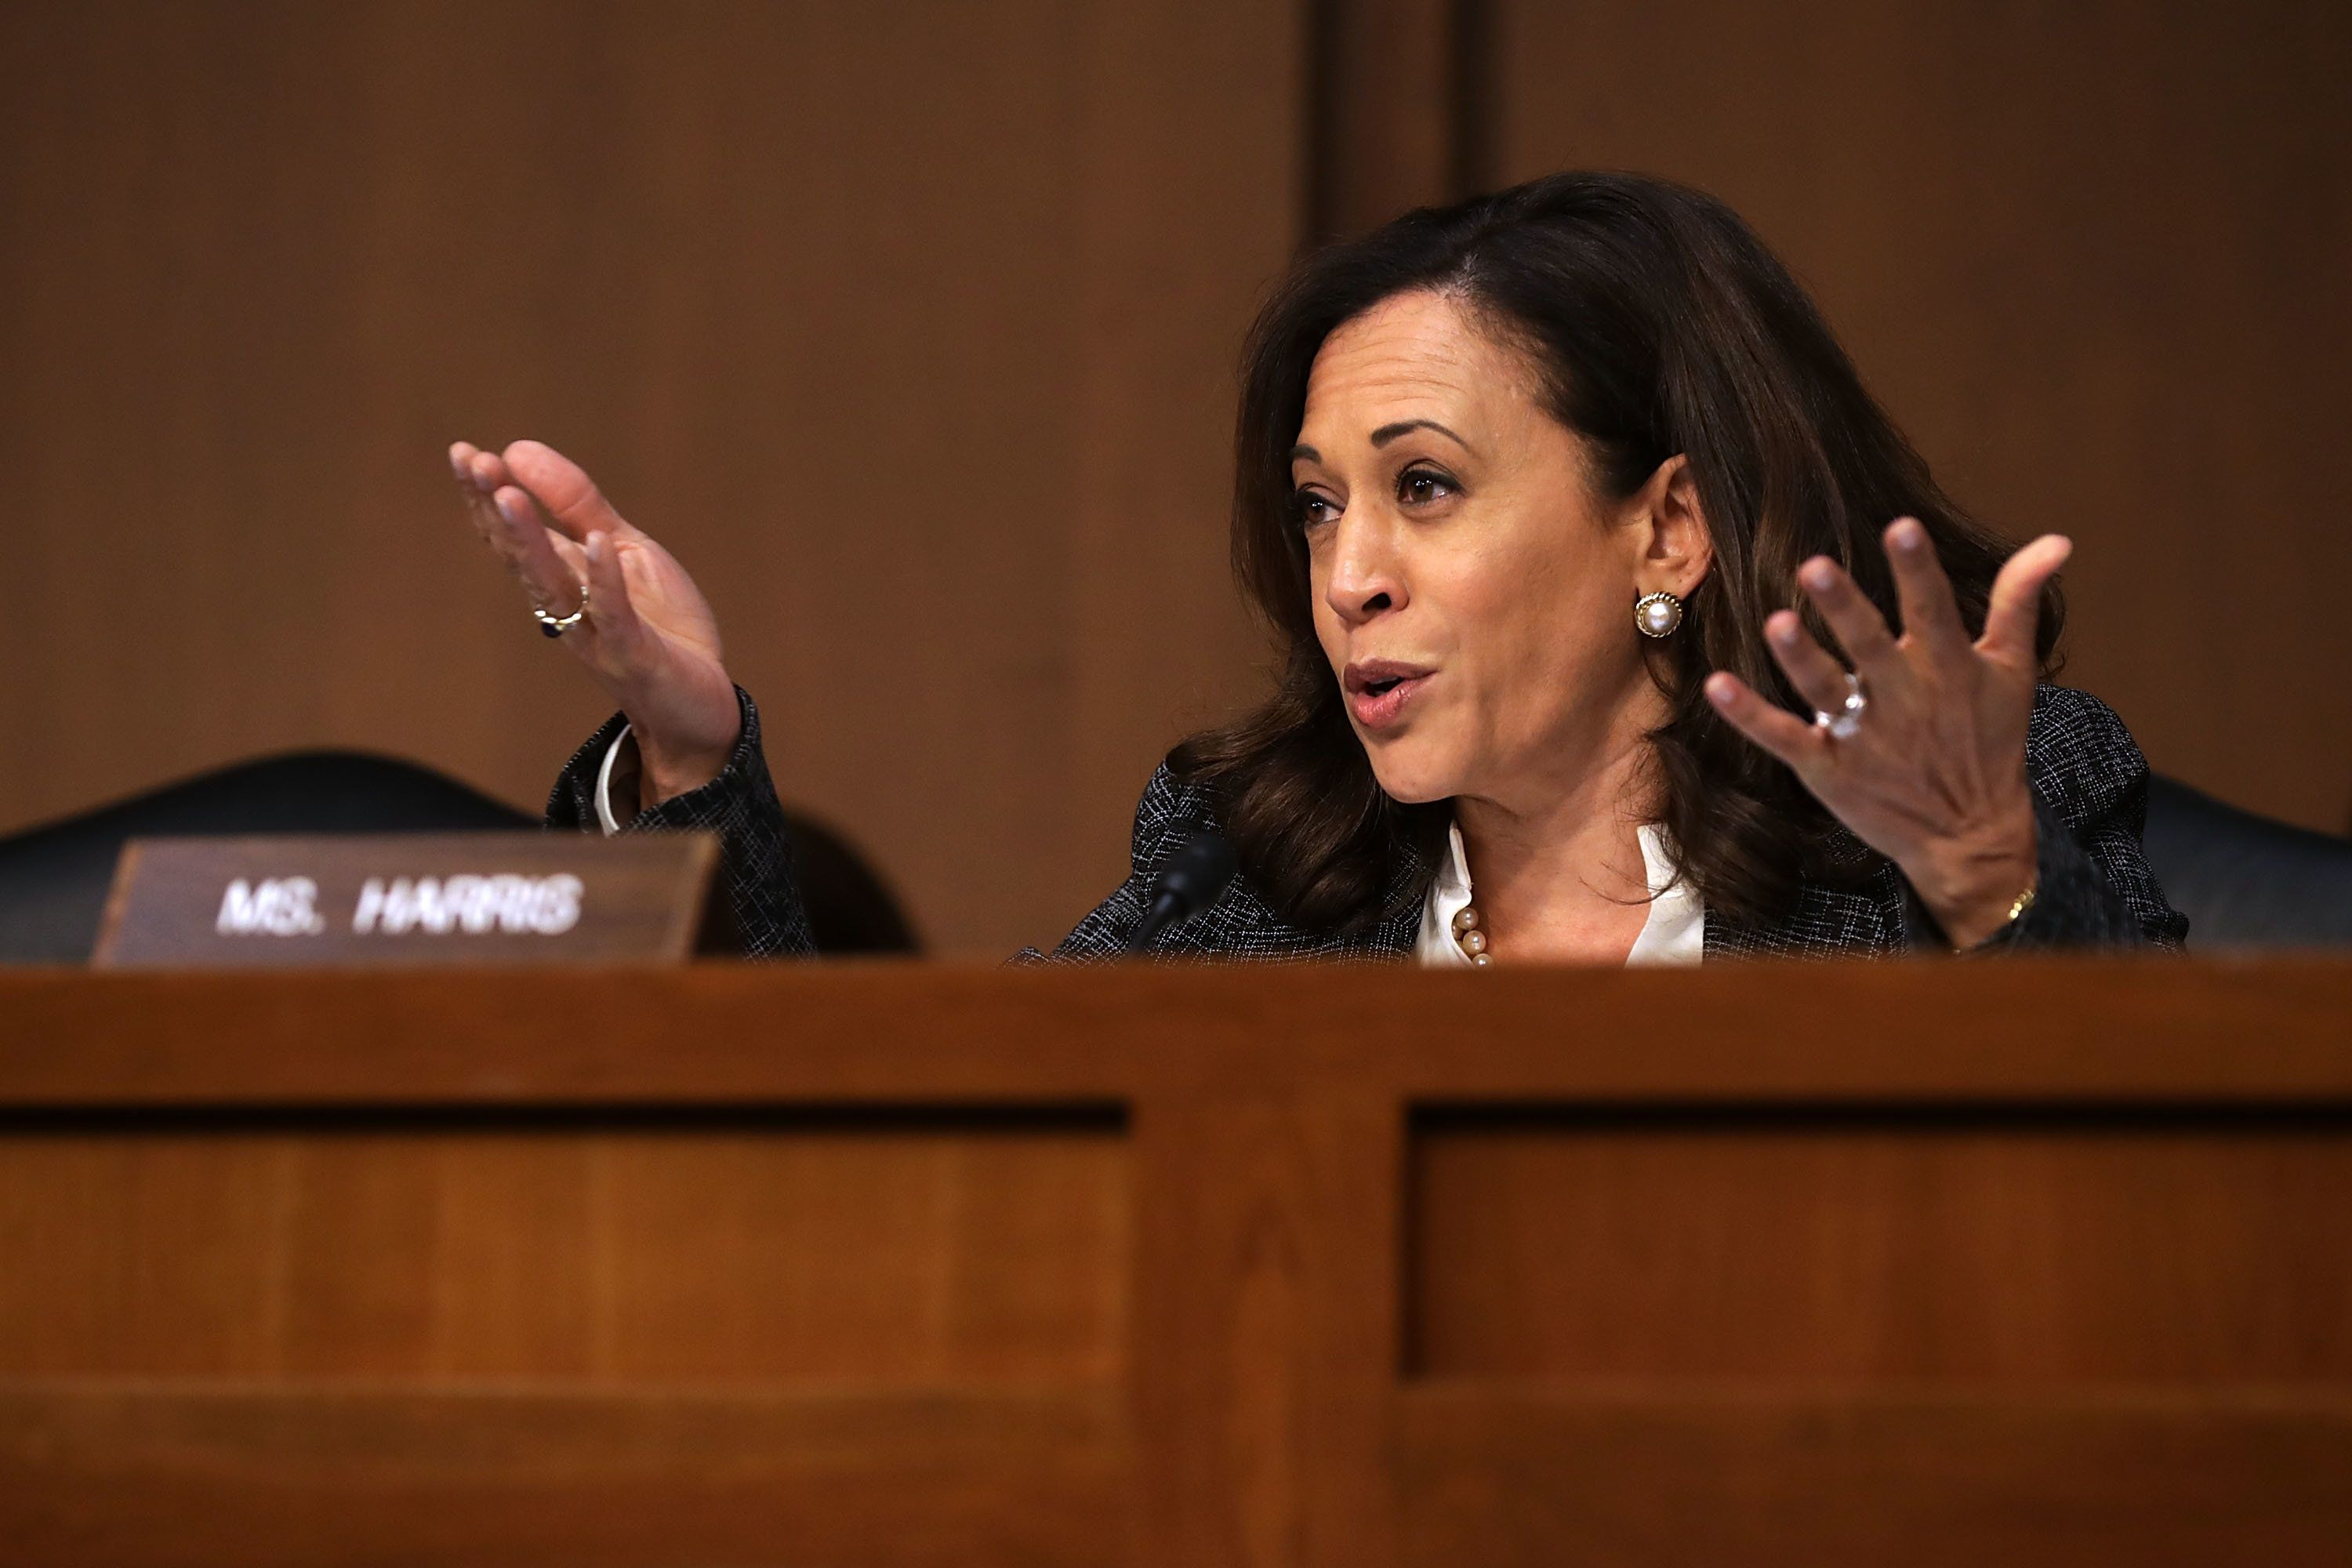 WASHINGTON, DC - JUNE 08:  Sen. Kamala Harris (D-CA) questions former FBI Director James Comey during a hearing of the Senate Intelligence Committee in the Hart Senate Office Building on Capitol Hill June 8, 2017 in Washington, DC. Comey said that President Donald Trump pressured him to drop the FBI's investigation into former National Security Advisor Michael Flynn and demanded Comey's loyalty during the one-on-one meetings he had with president.  (Photo by Chip Somodevilla/Getty Images)